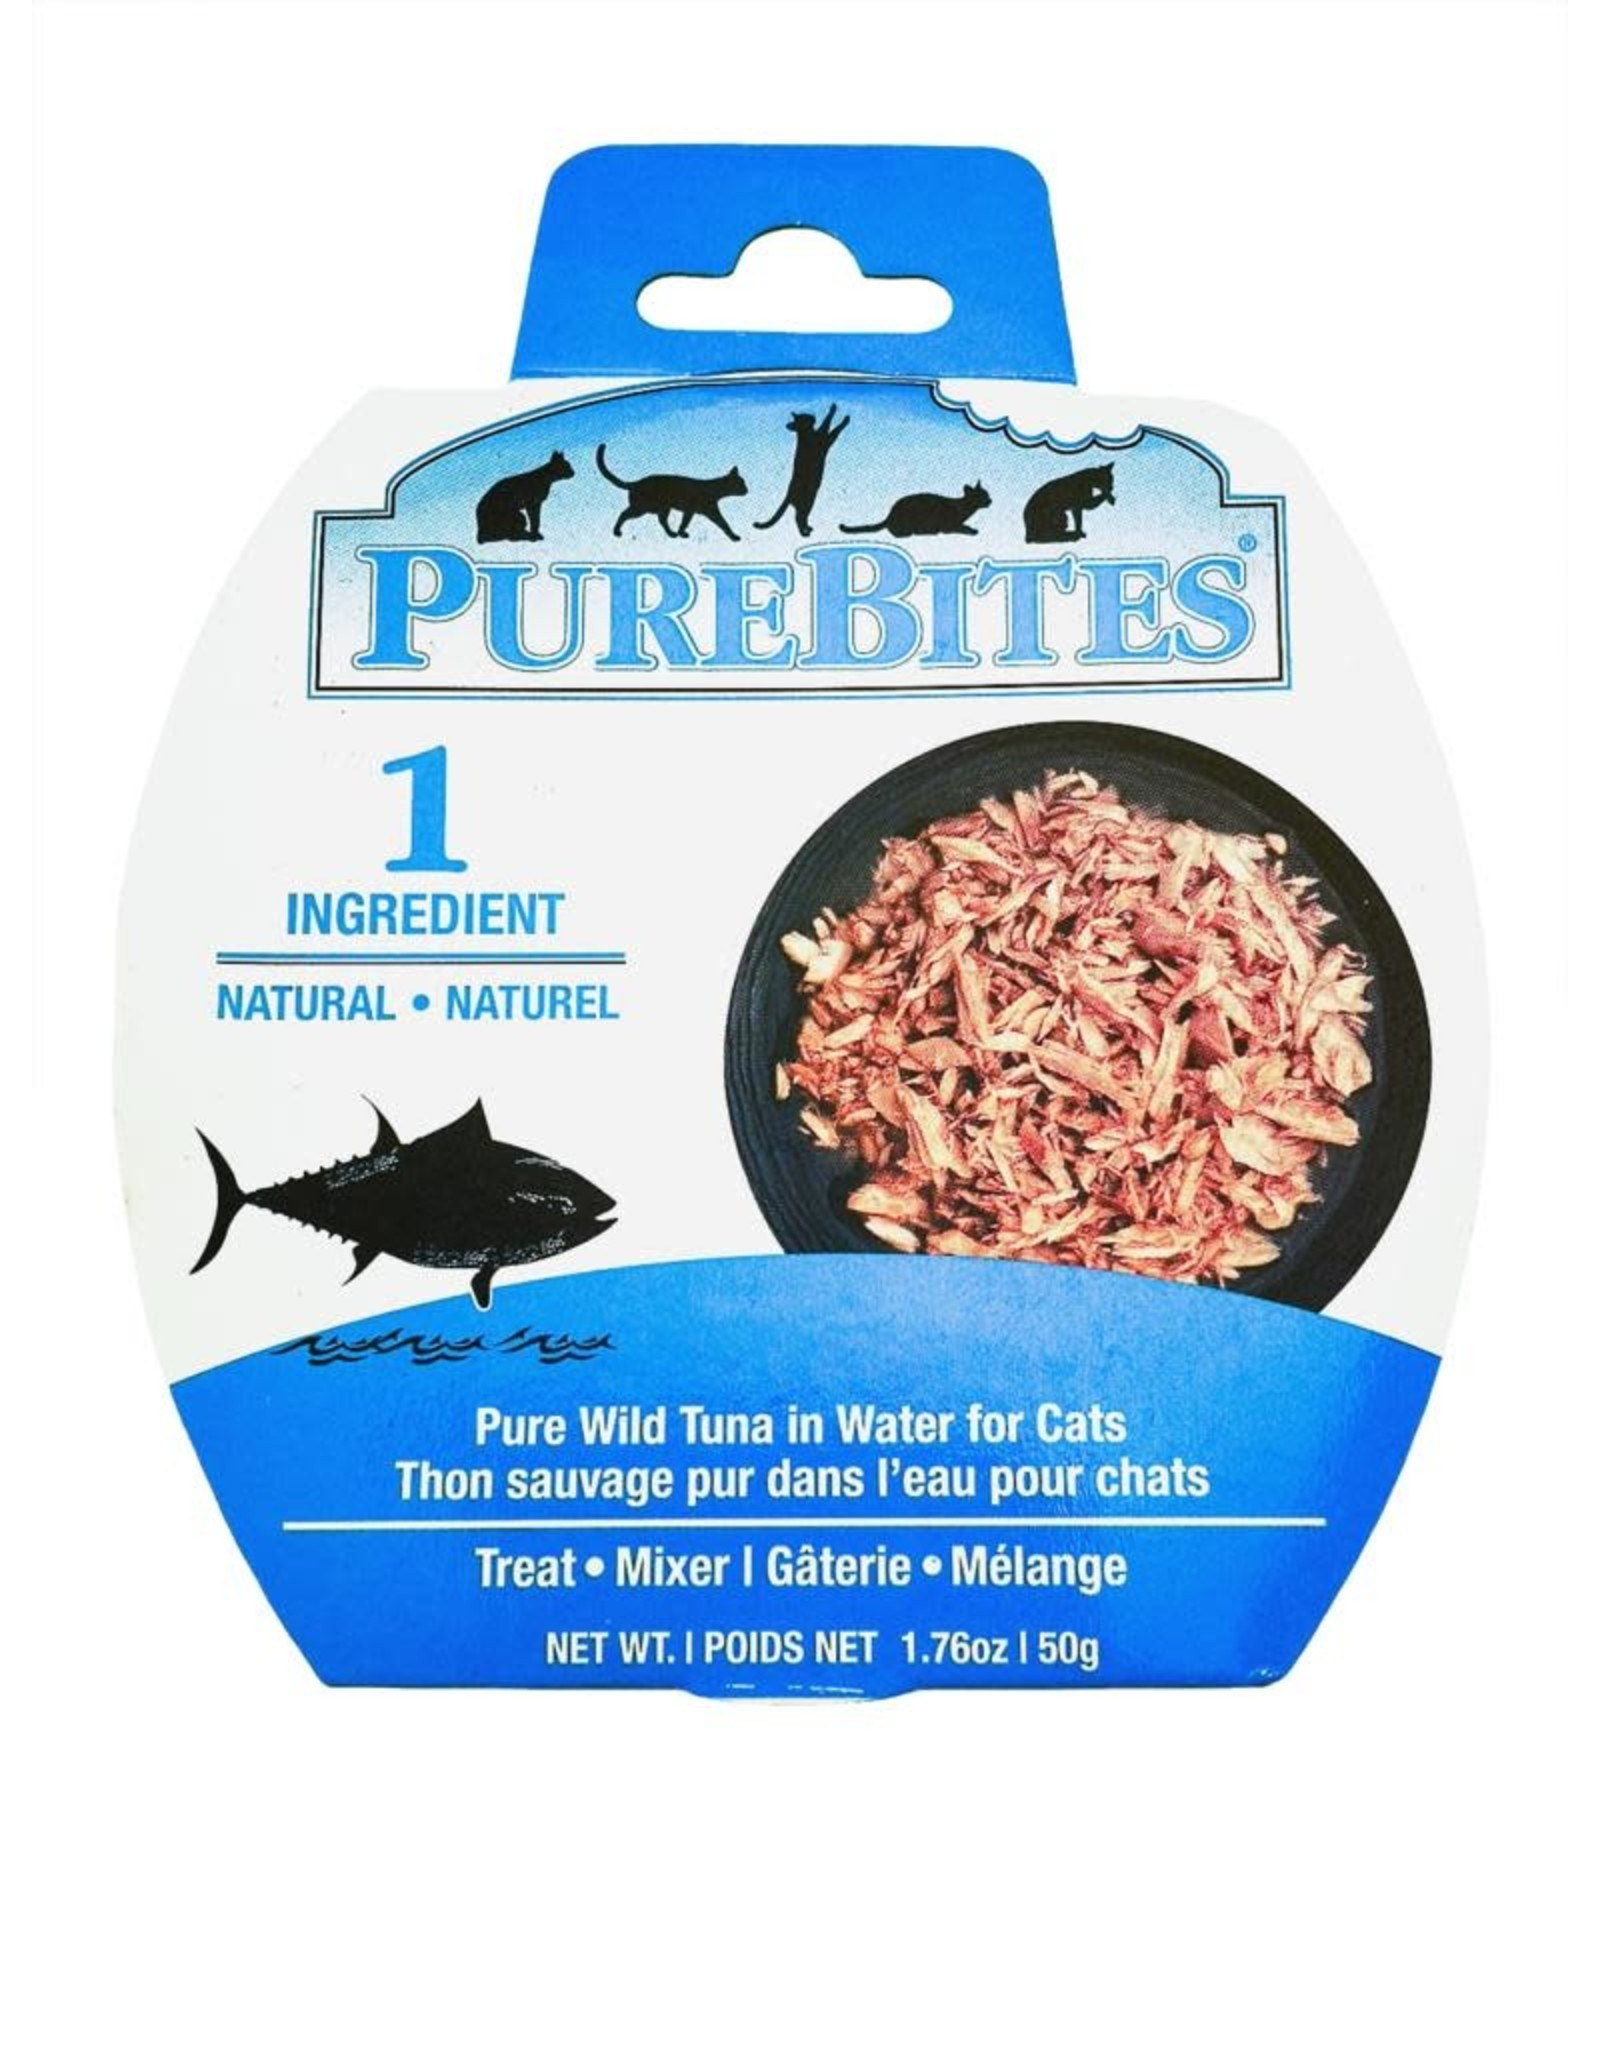 Pure Bites PureBites Mixers Tuna in Water 1.76oz/50g (12)